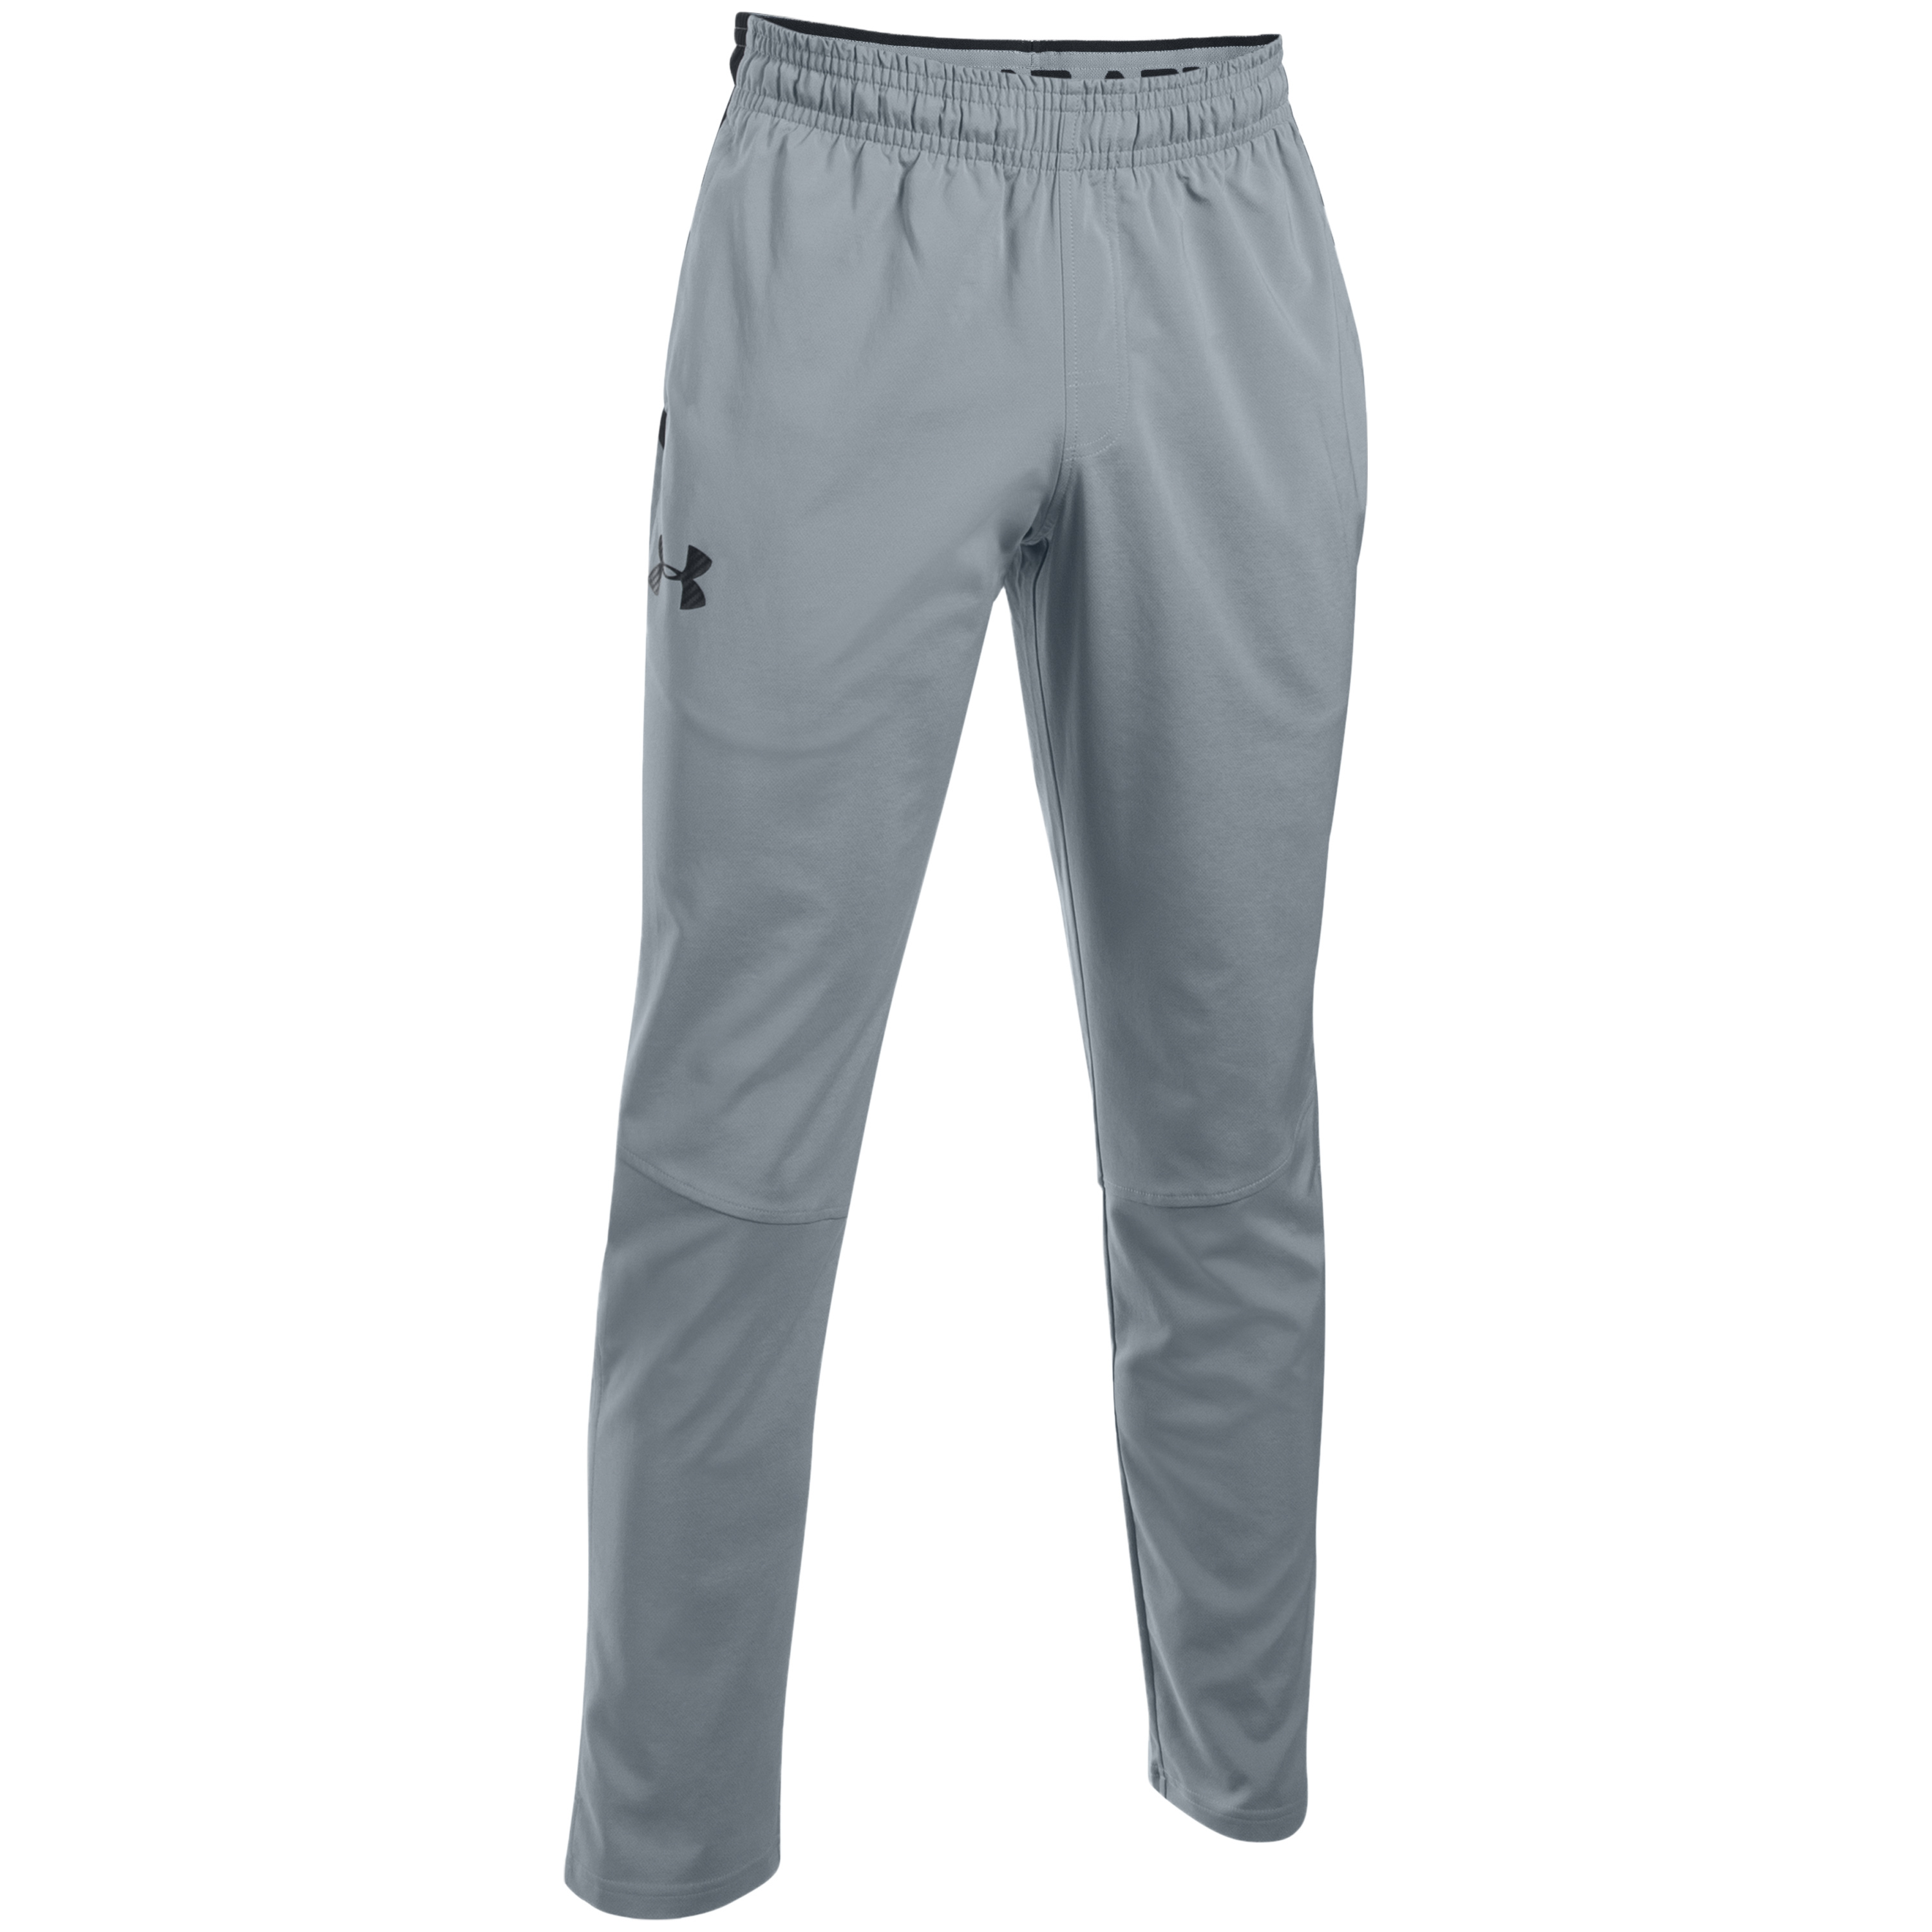 Under Armour Training Pants Hiit Woven gray